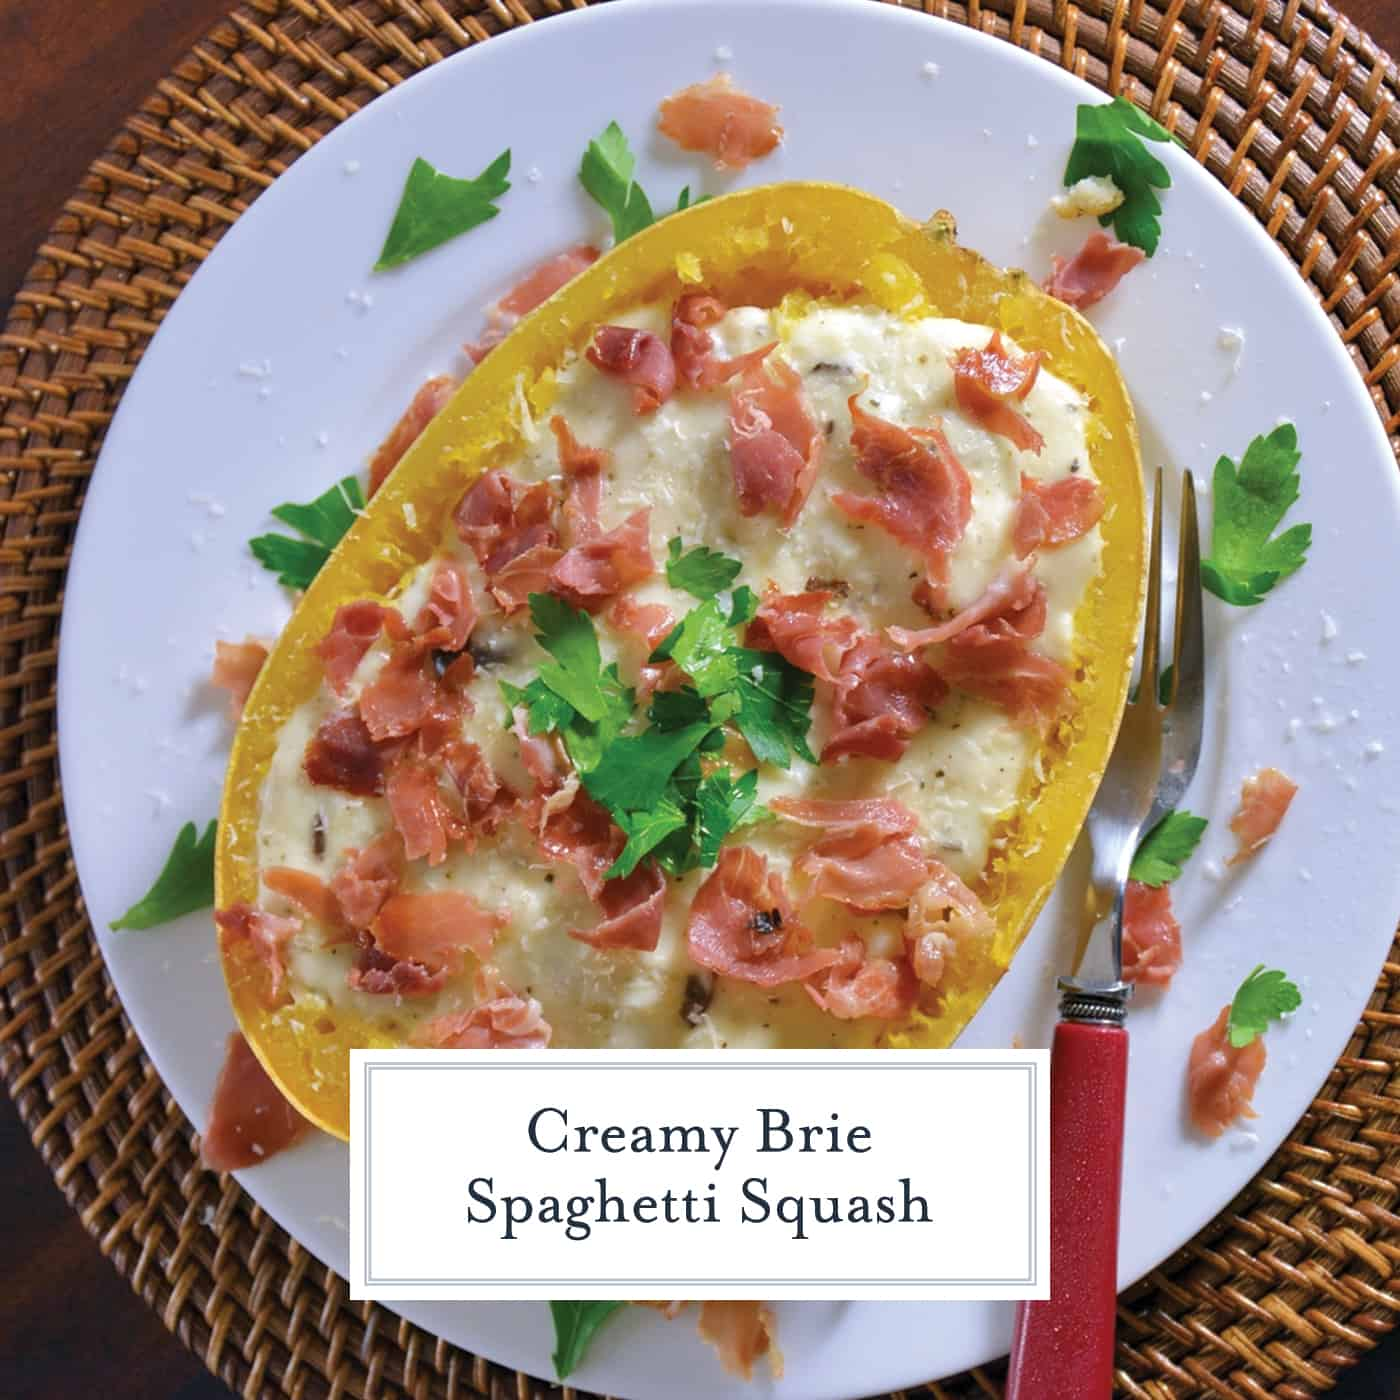 Creamy Brie Spaghetti Squash uses the tender golden strands of baked spaghetti squash and pairs them with a decedent brie sauce, mushrooms and crispy prosciutto. #bakedspaghettisquash #briesauce www.savoryexperiments.com